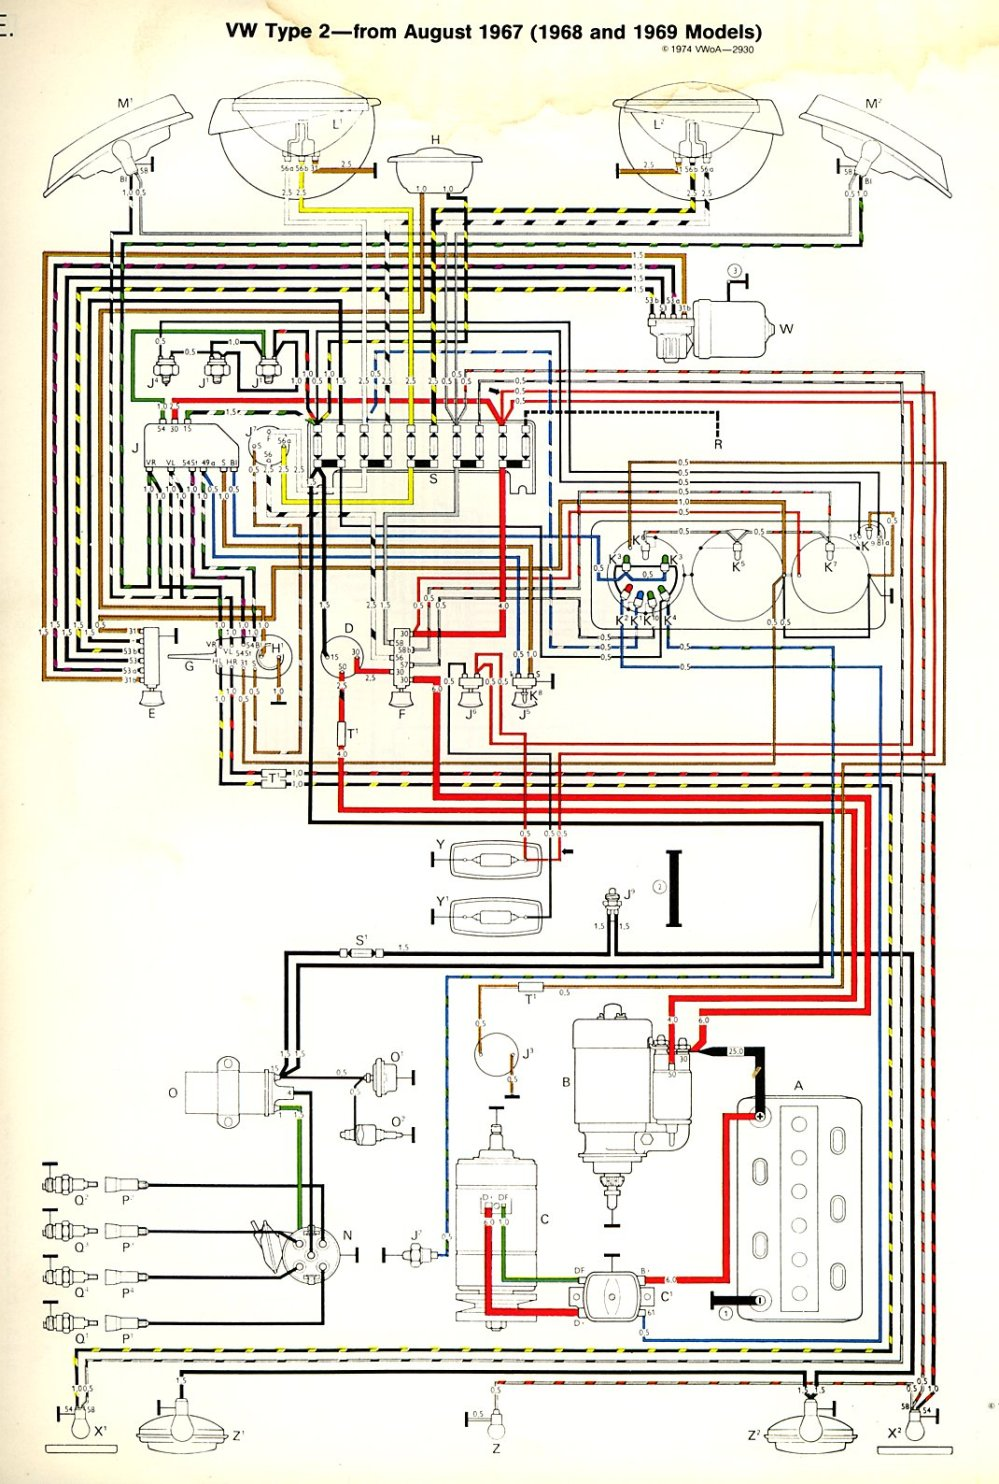 medium resolution of the samba wiring diagram wiring diagram yerthesamba com type 2 wiring diagrams the samba beetle wiring